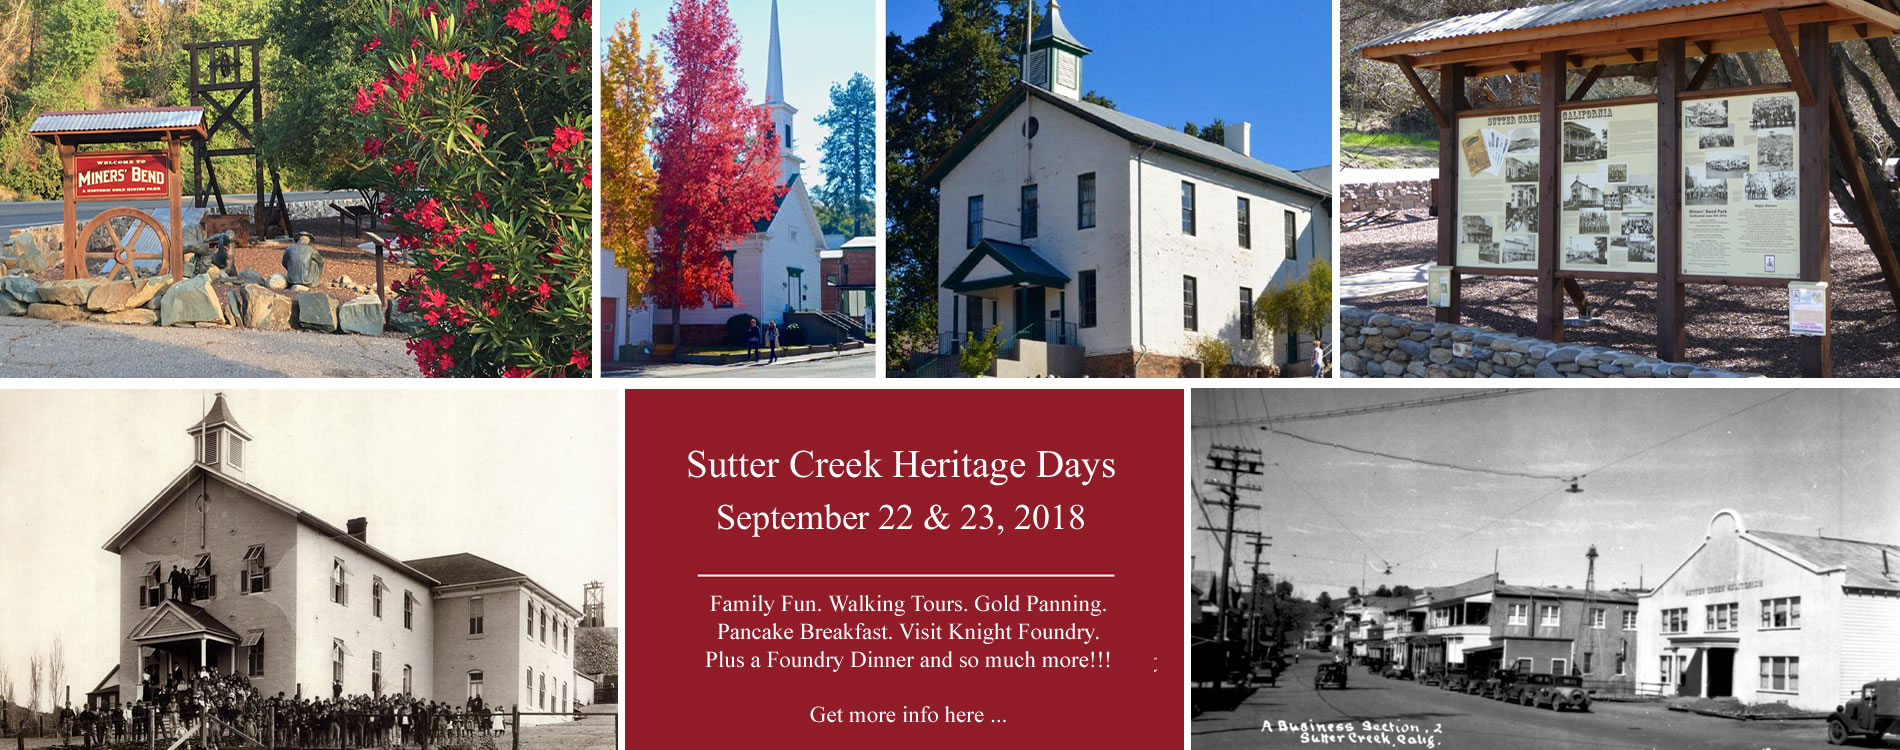 sutter creek heritage days 2018